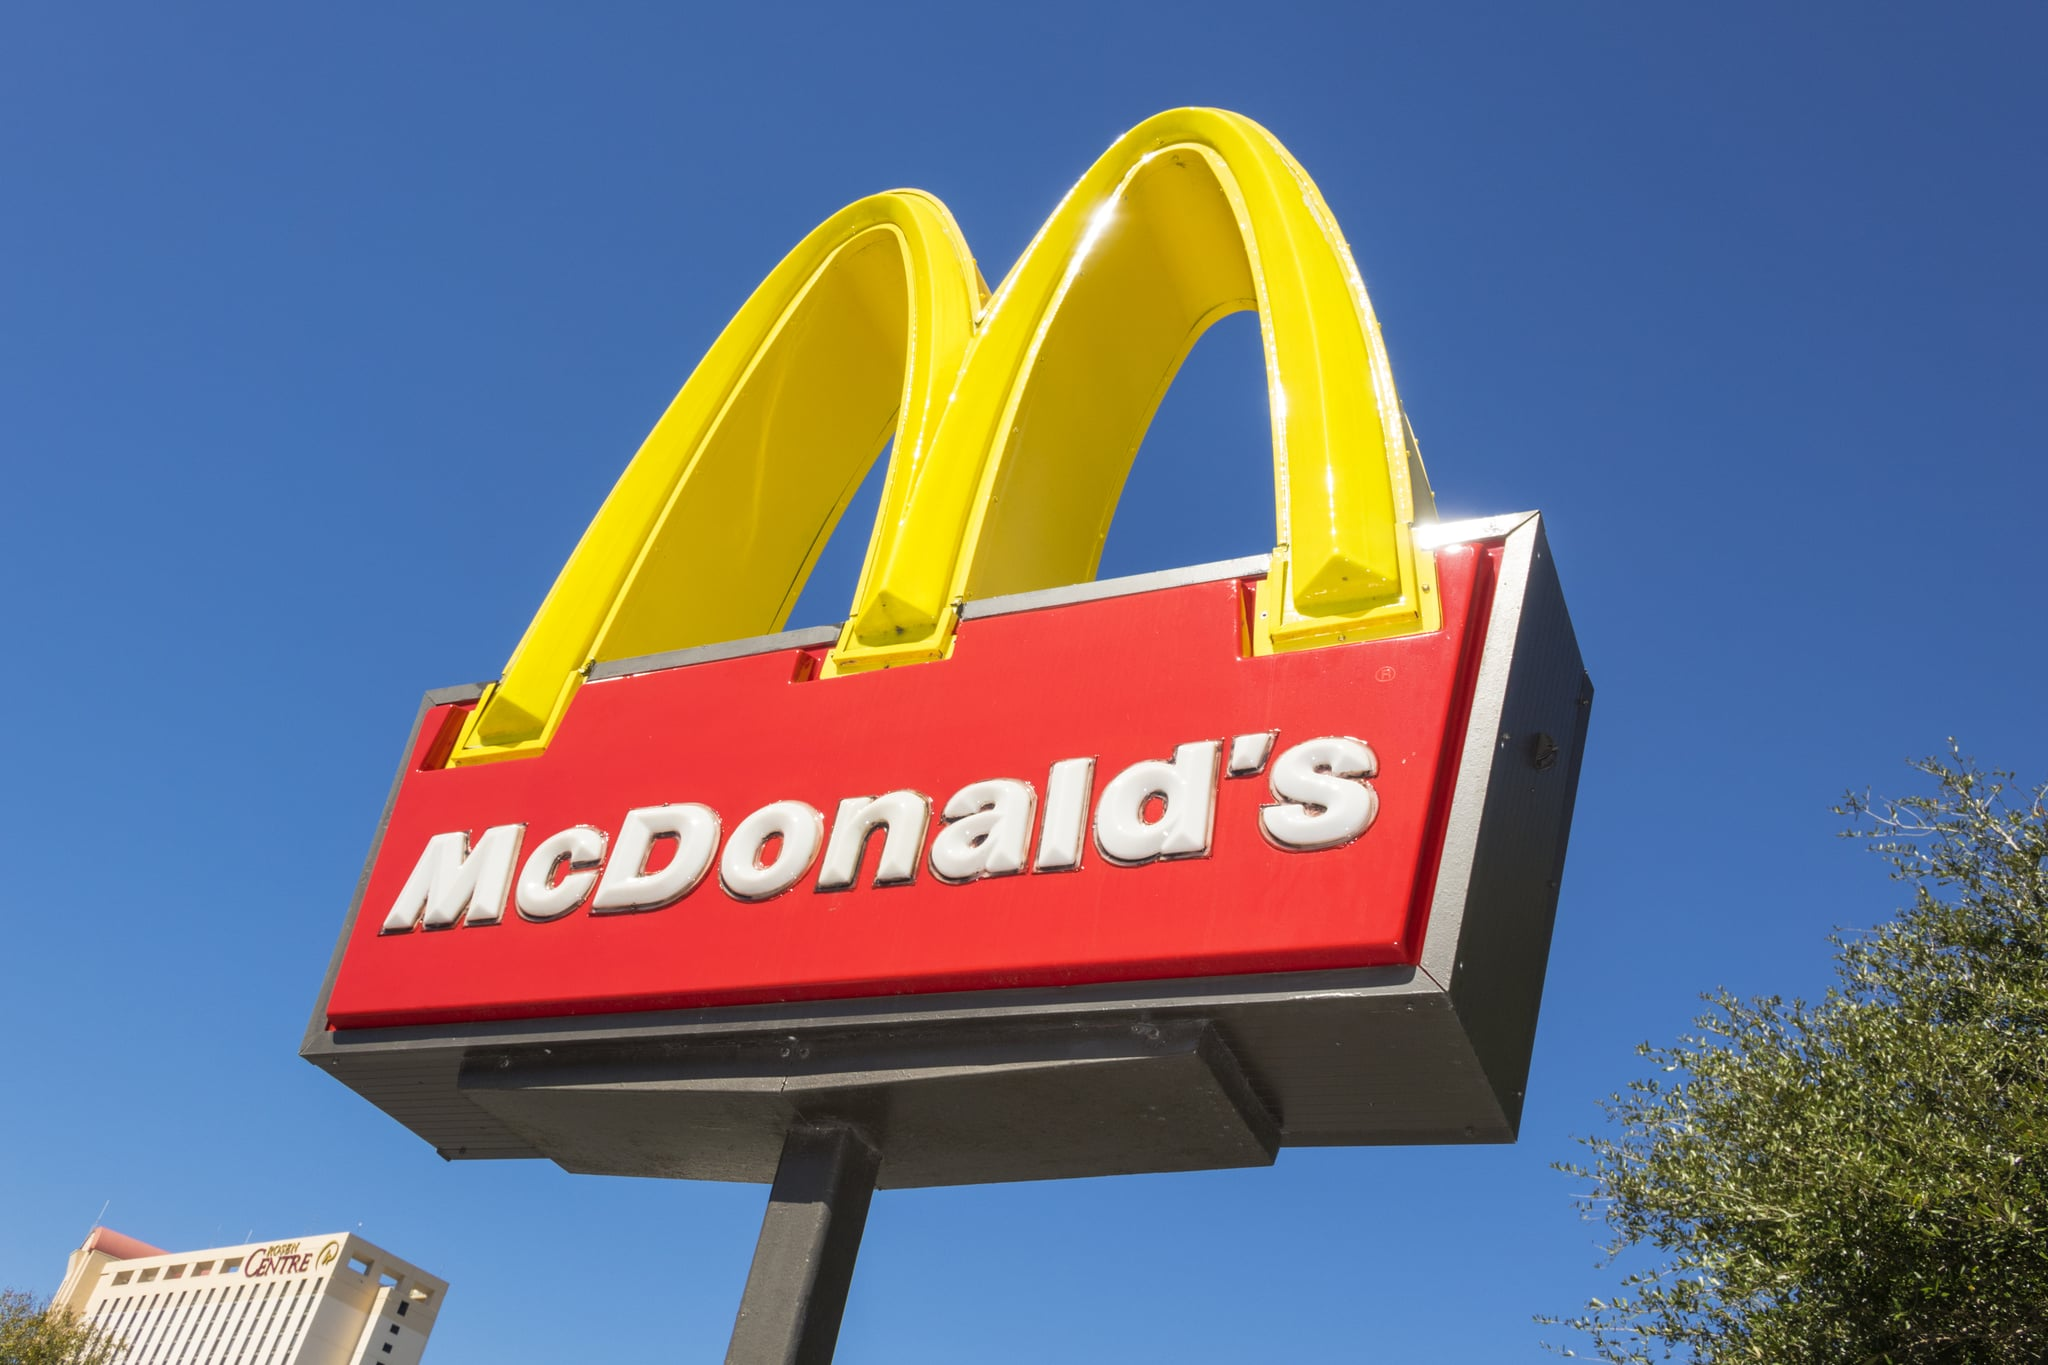 McDonald's sign in Orlando. (Photo by: Jeffrey Greenberg/Universal Images Group via Getty Images)